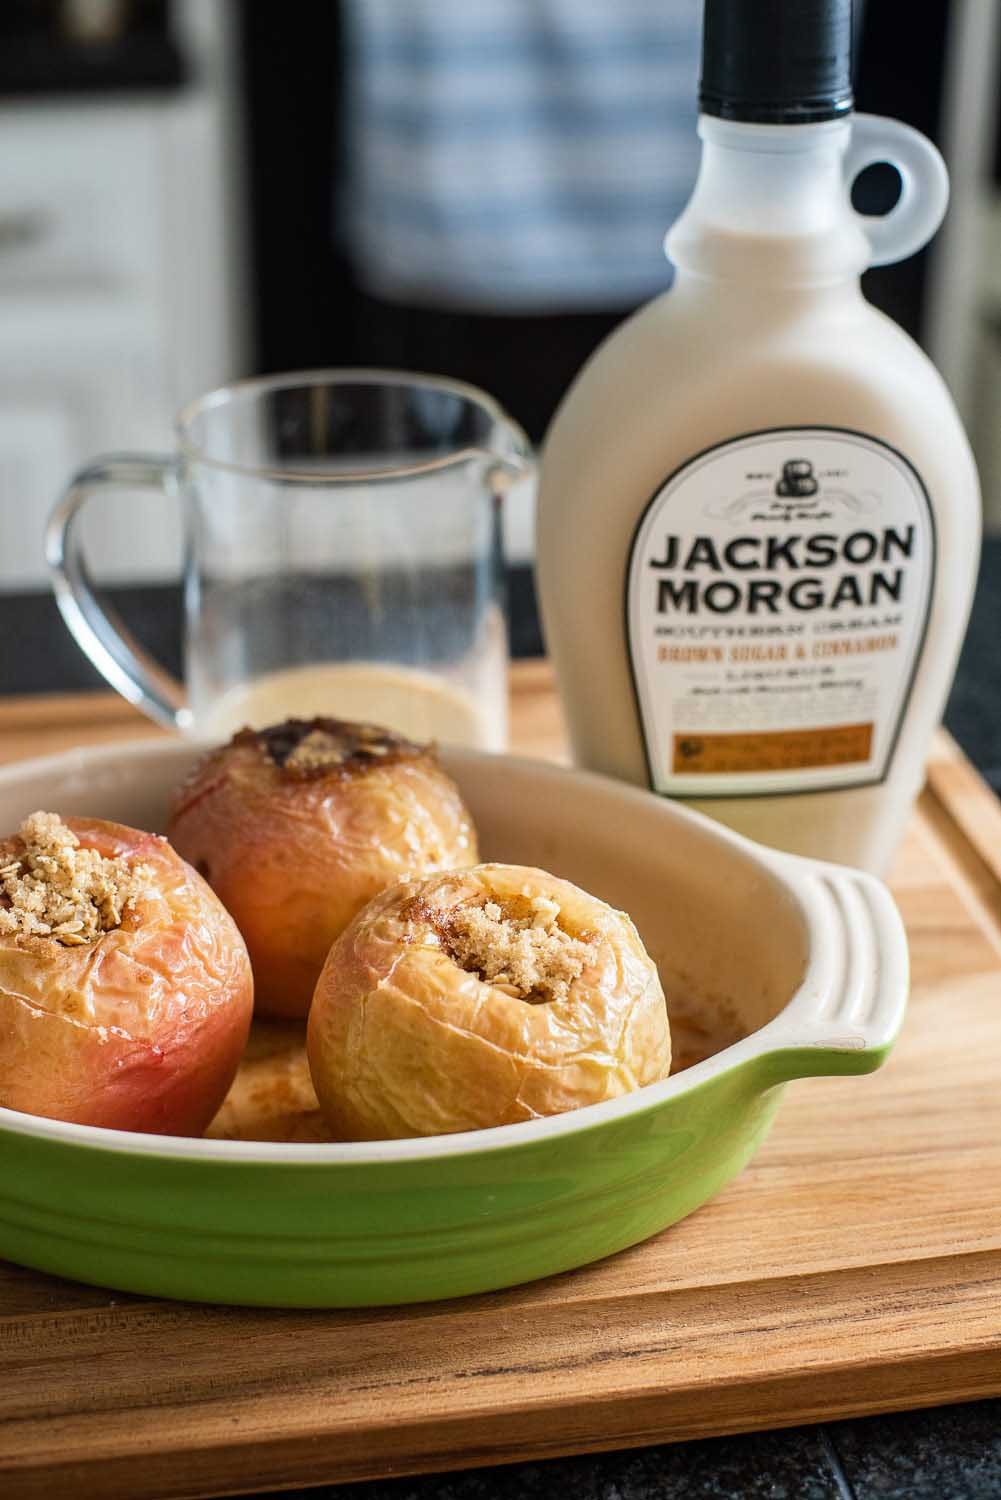 Jackson Morgan baked apples